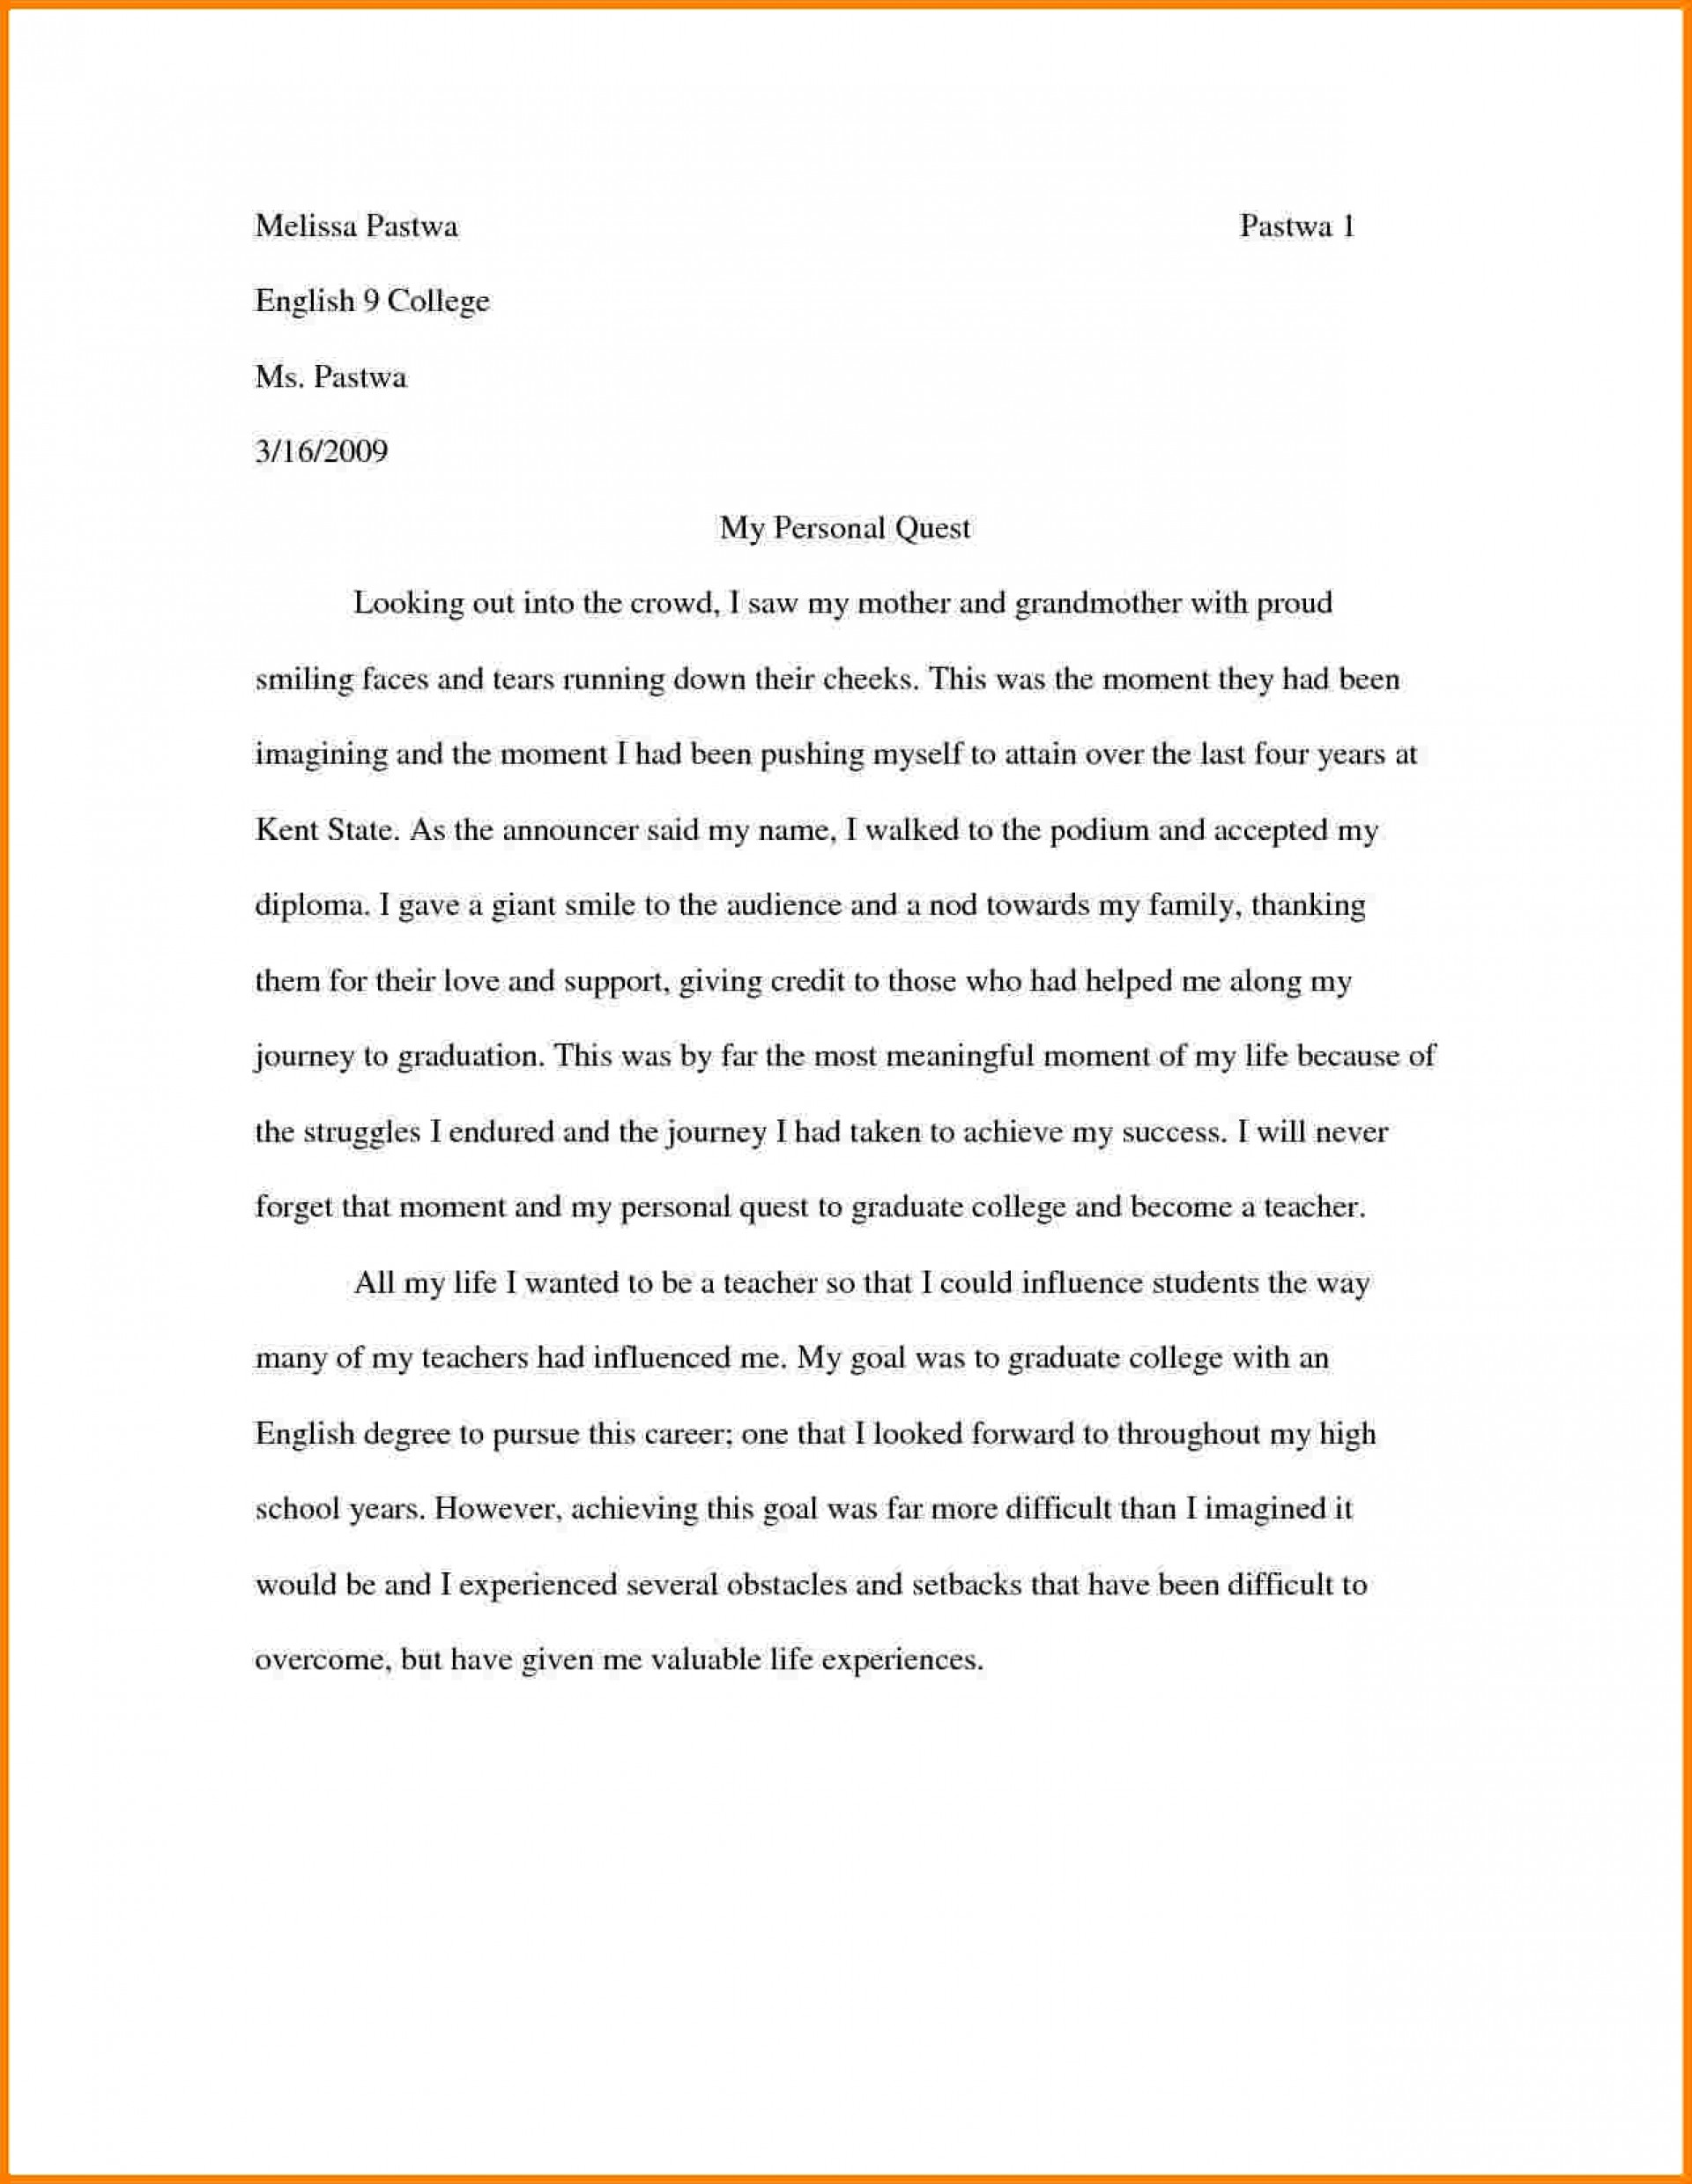 012 3341381556 How To Write Proposal20nt Essay Topics Buy Researchs Cheap Examples20 Remarkable Research Paper 1920